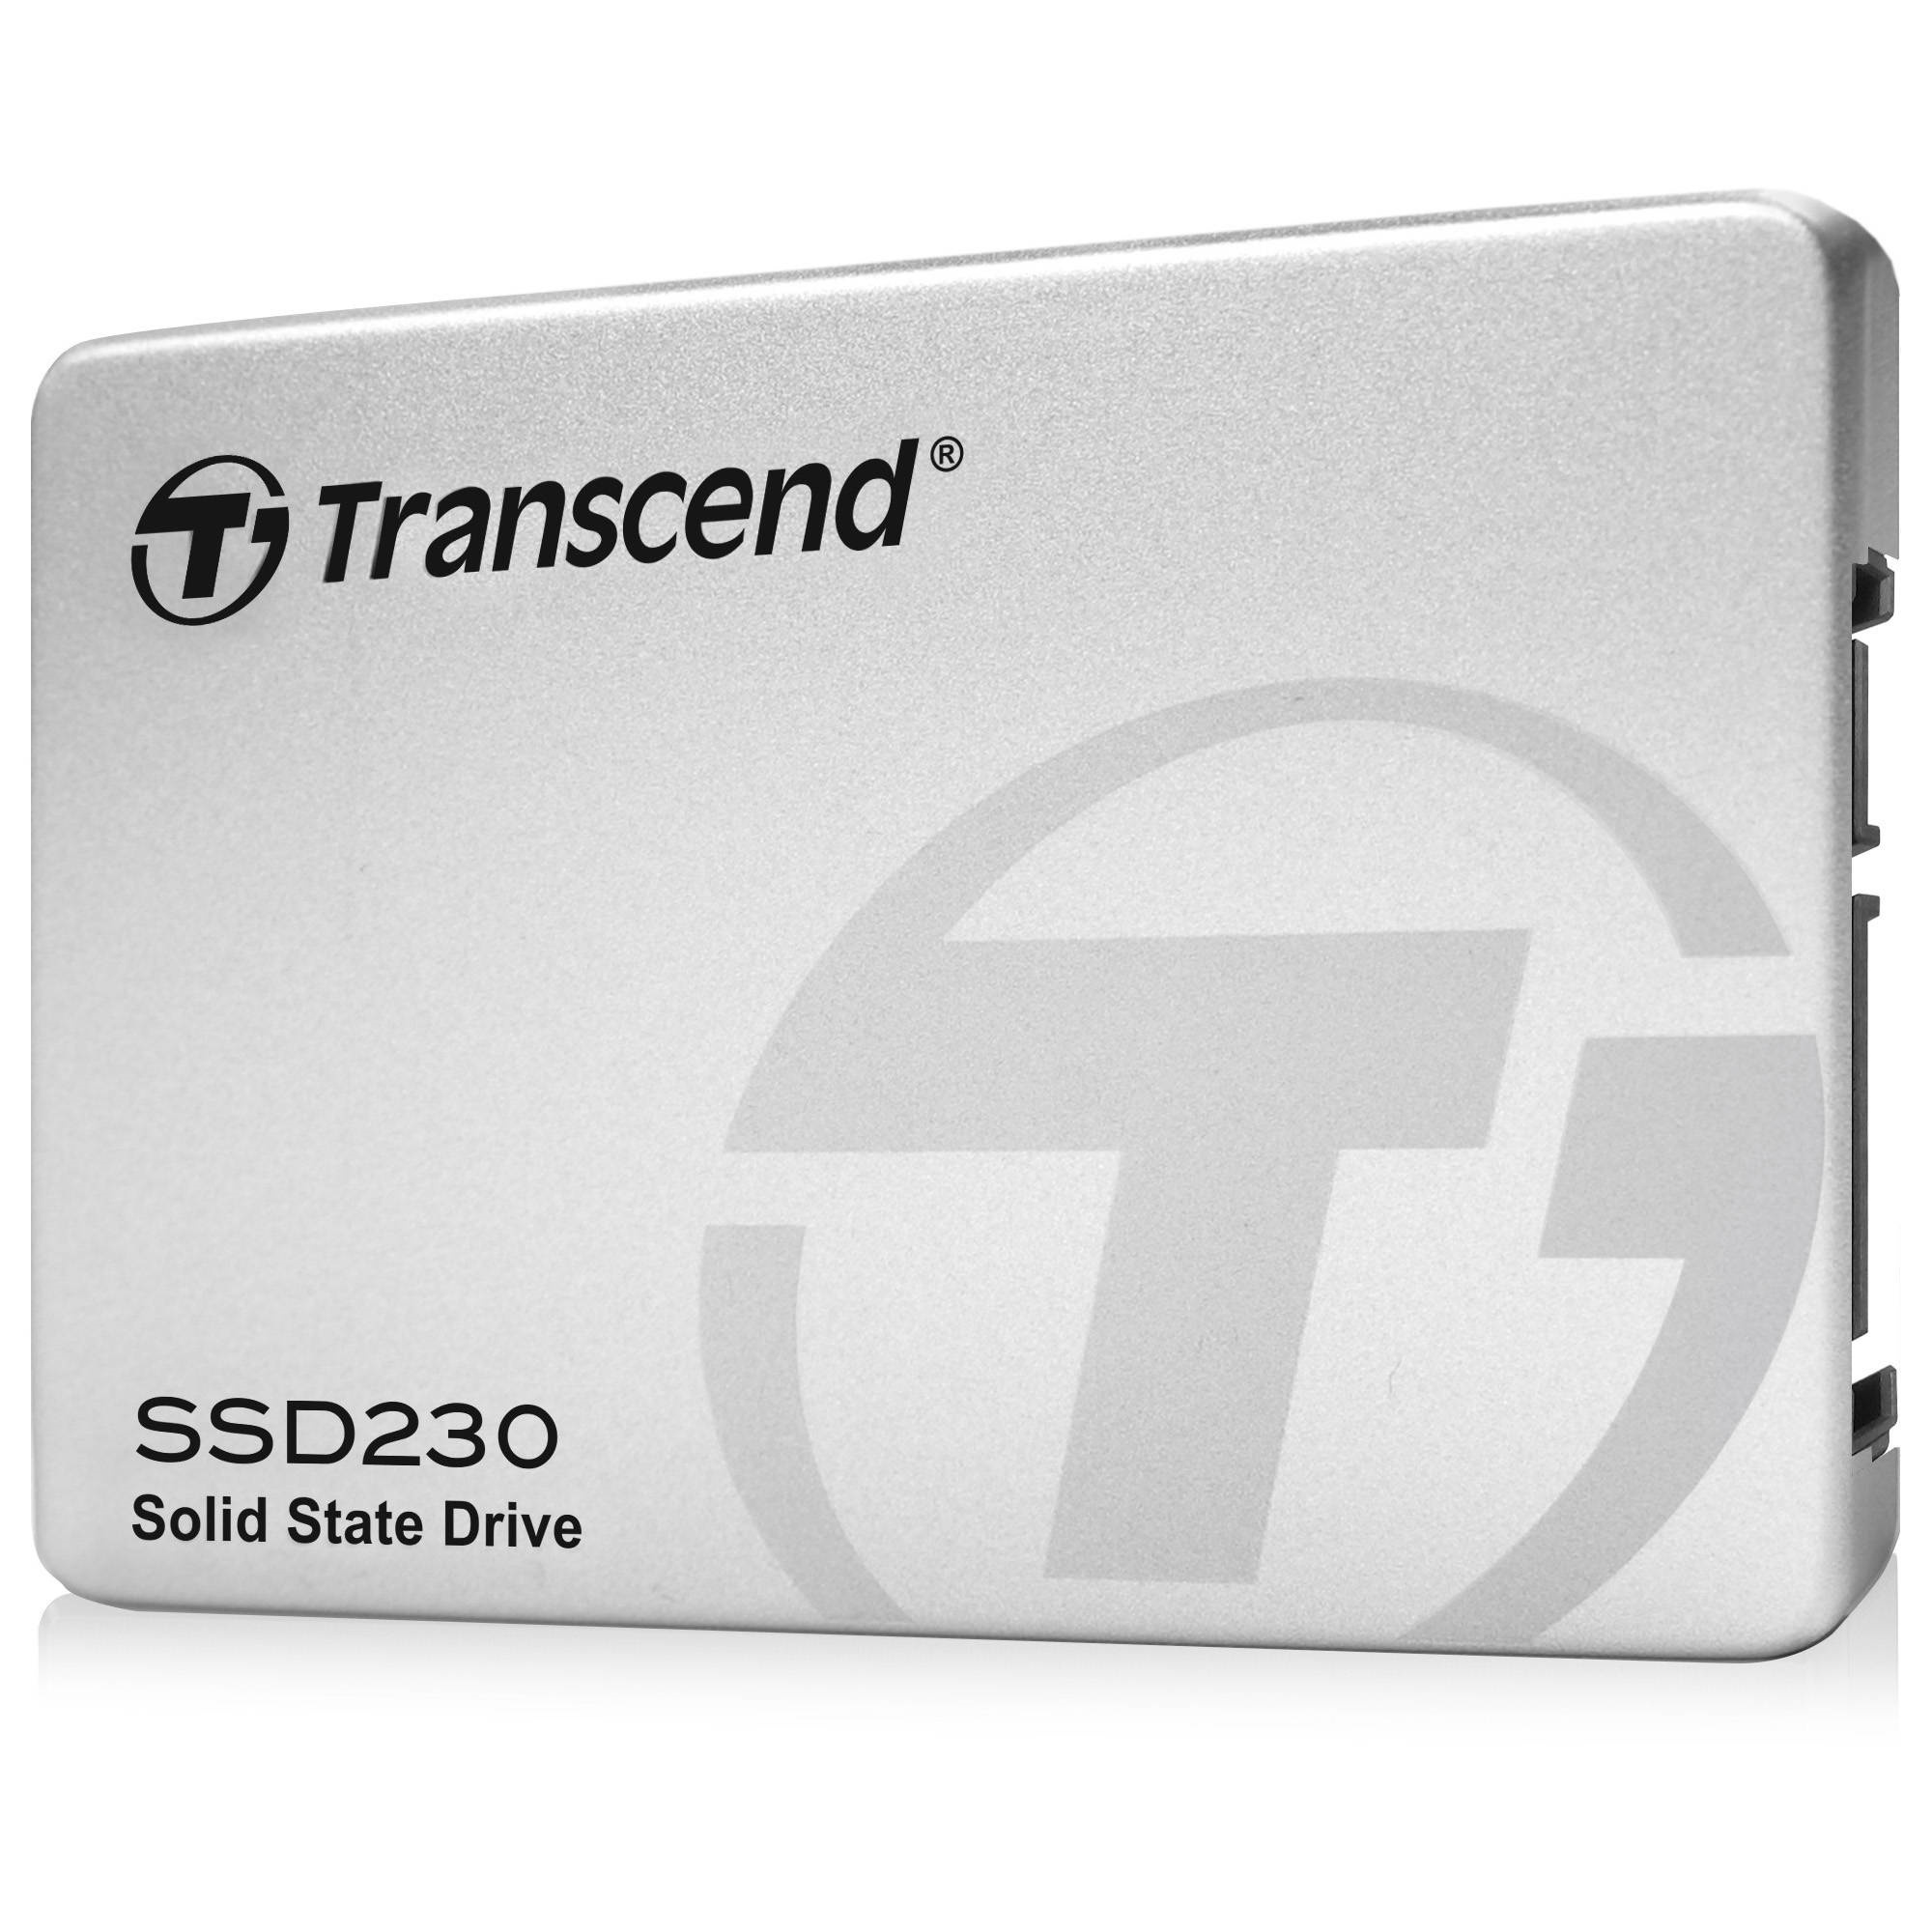 "Transcend 256GB SSD230 SATA III 2.5"" Internal SSD"